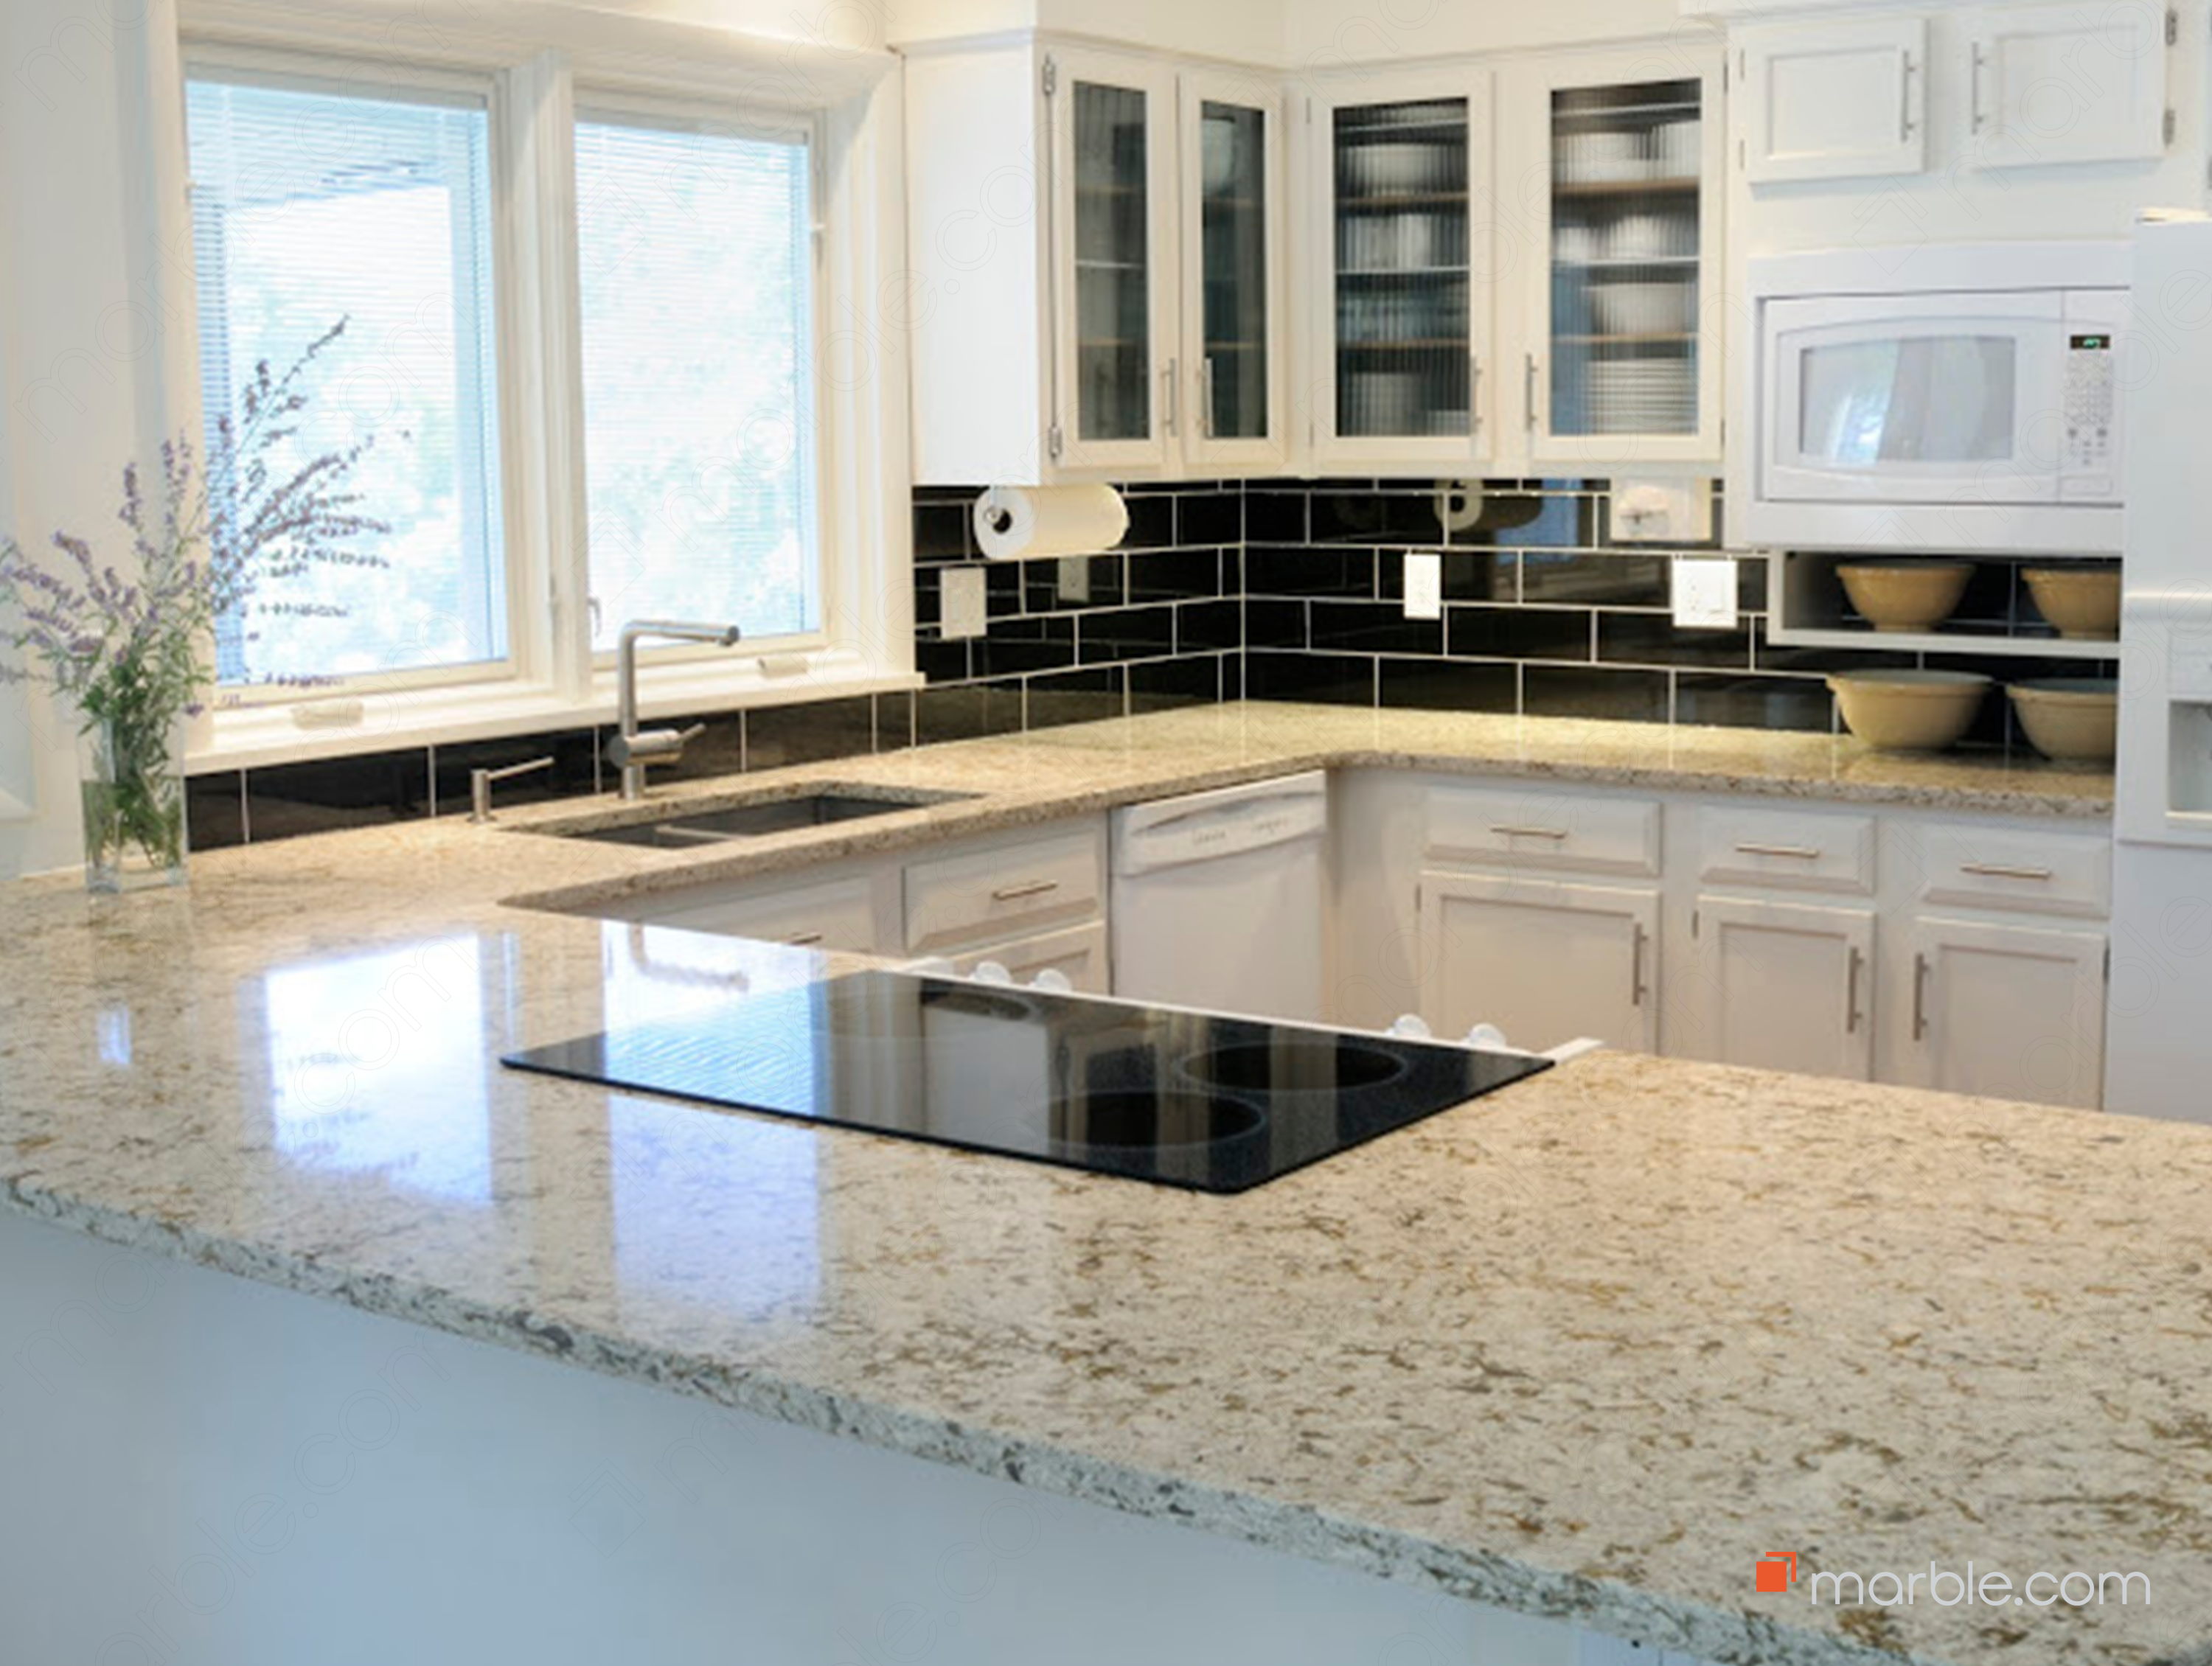 How to Make Granite Seams Disappear image